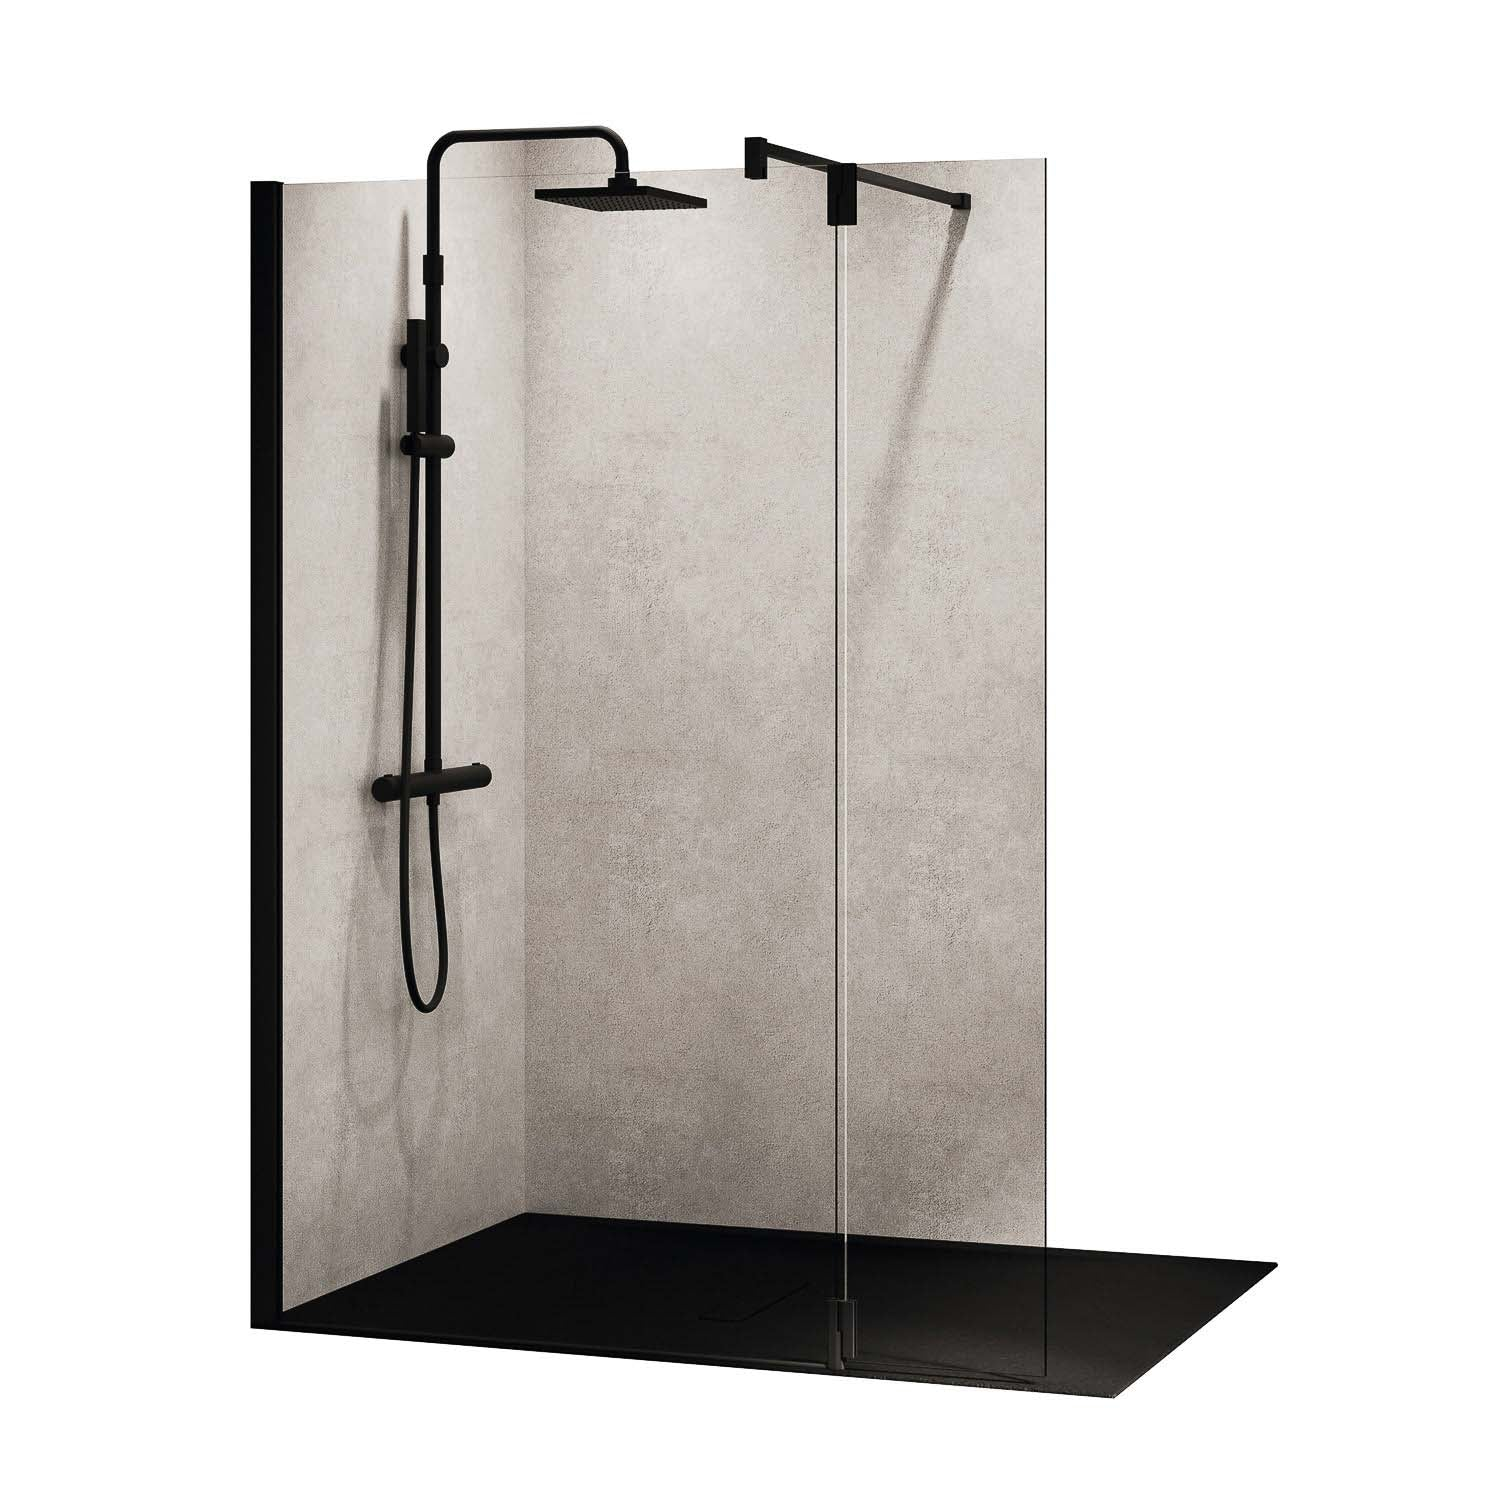 870-900mm Ergo Wet Room Screen Clear Glass with a matt black finish on a white background